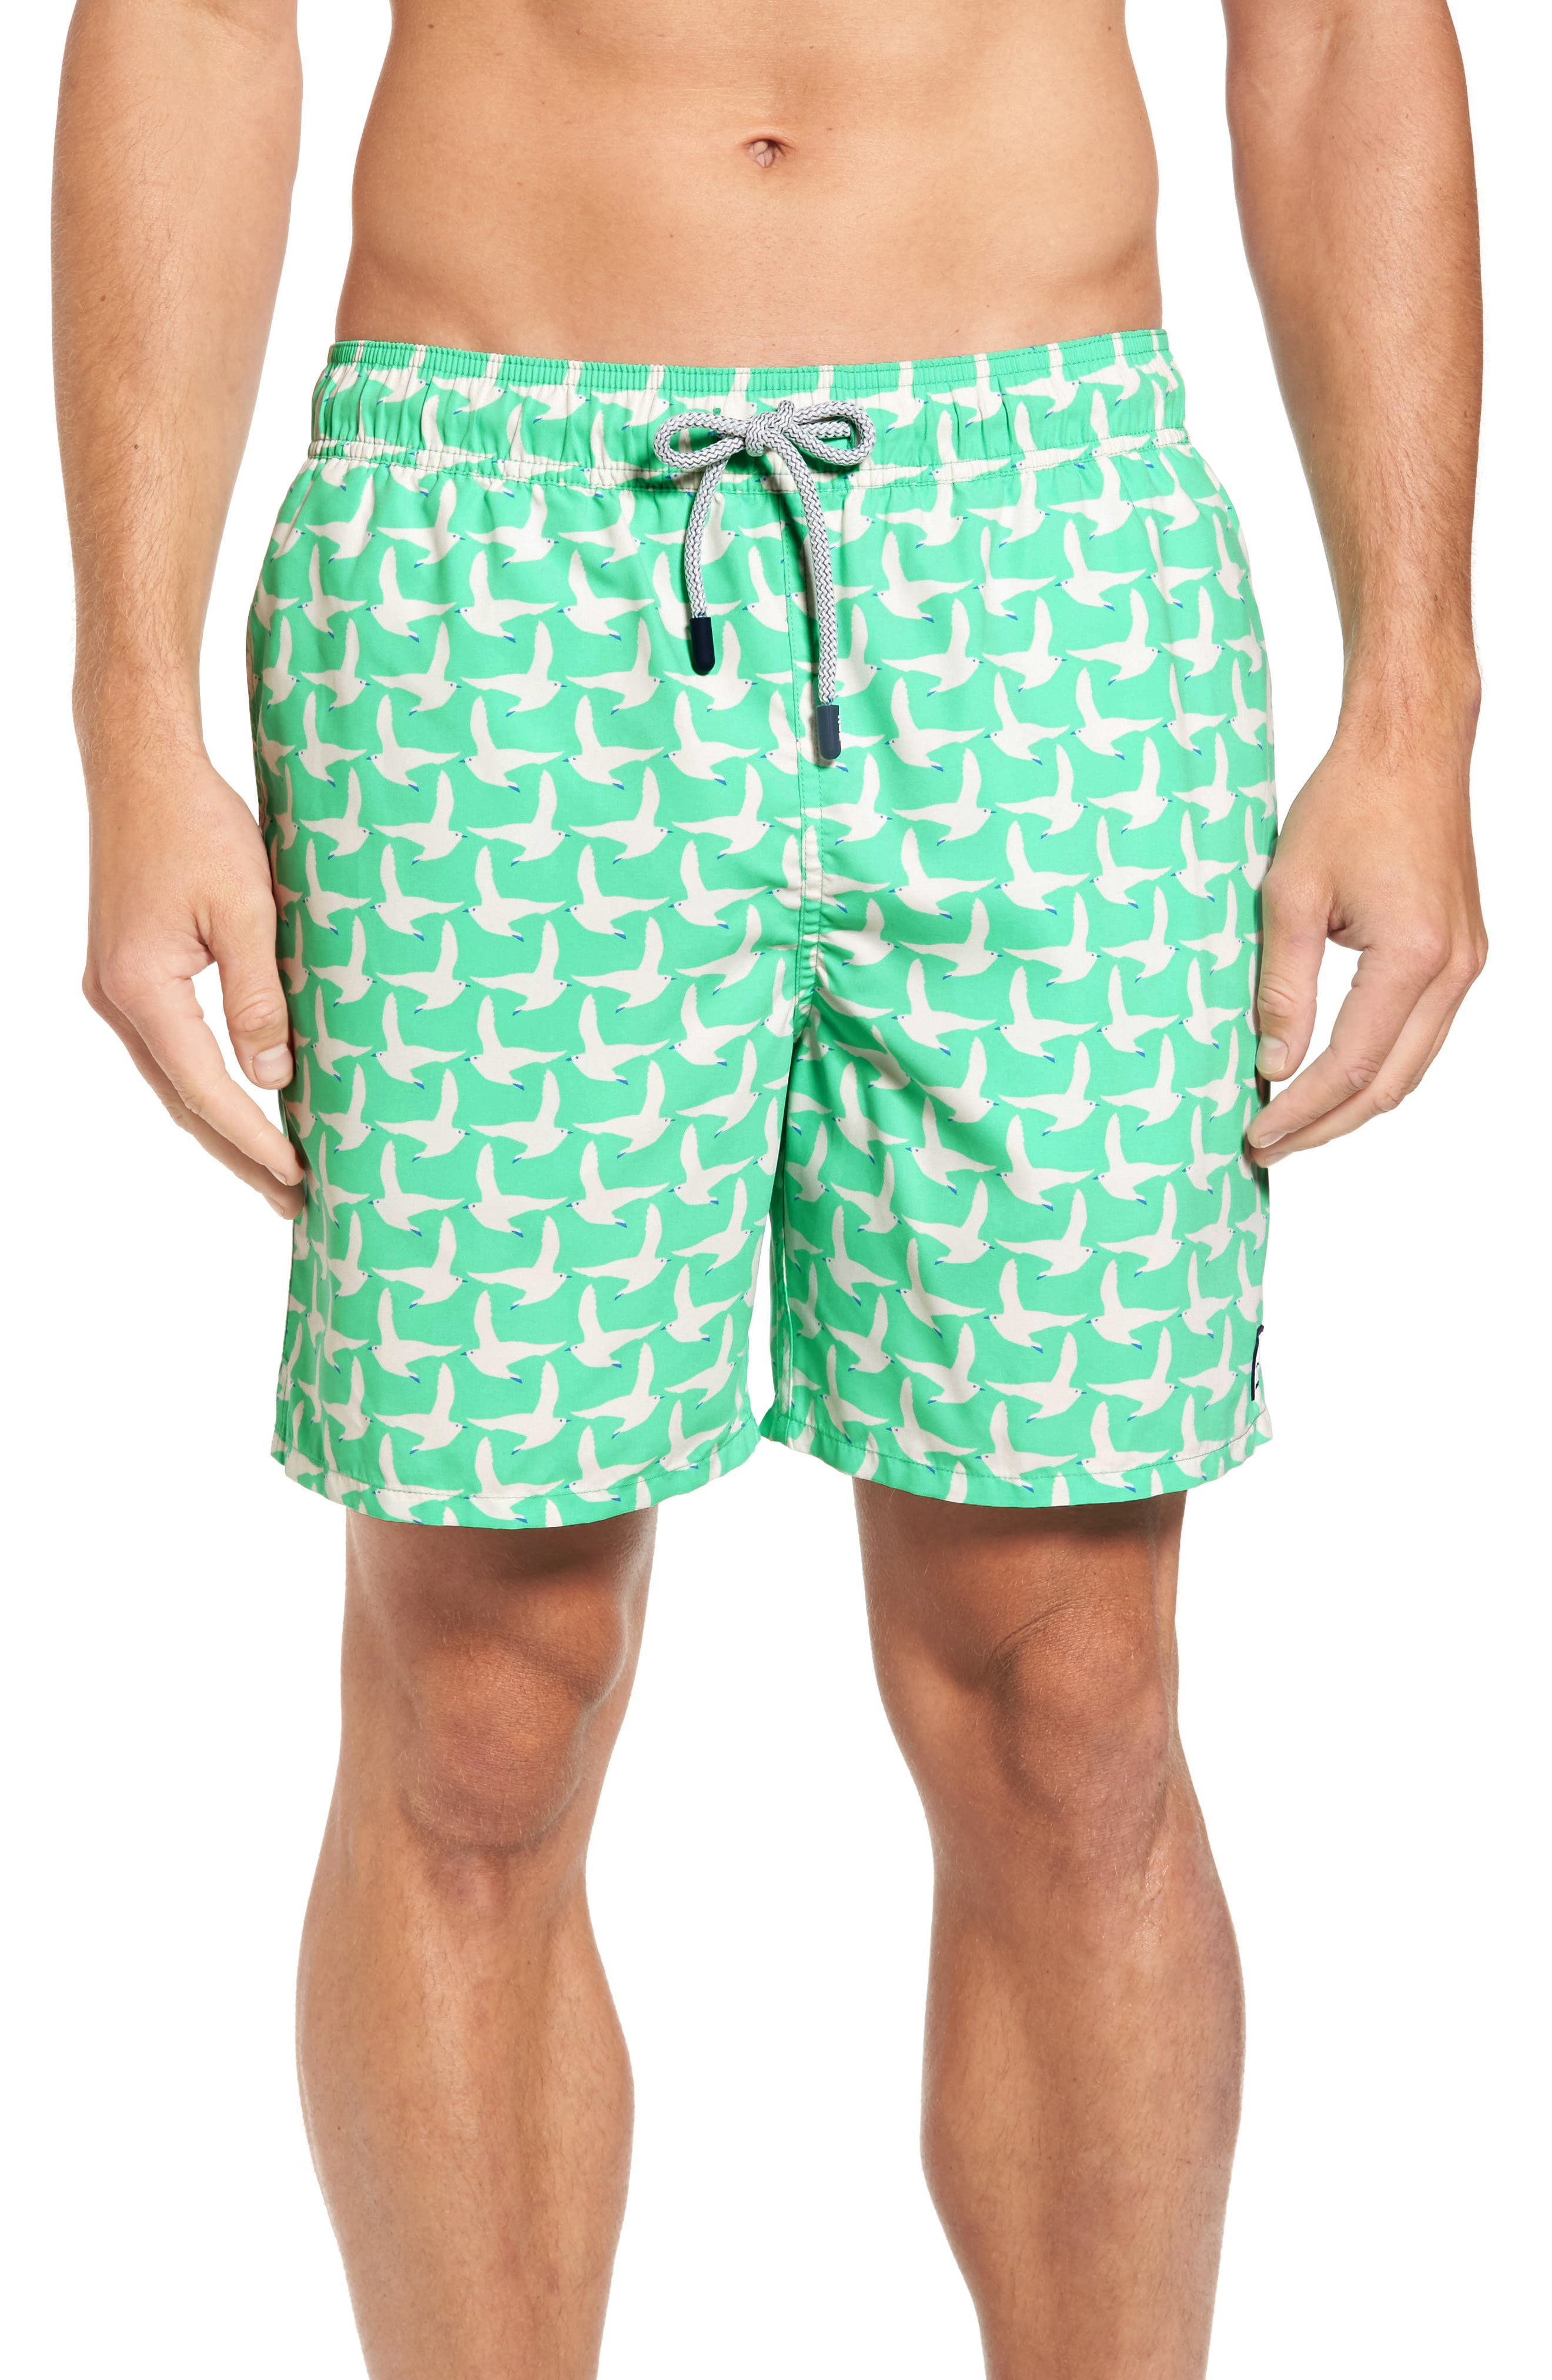 Tom & Teddy Seagull Swim Trunks